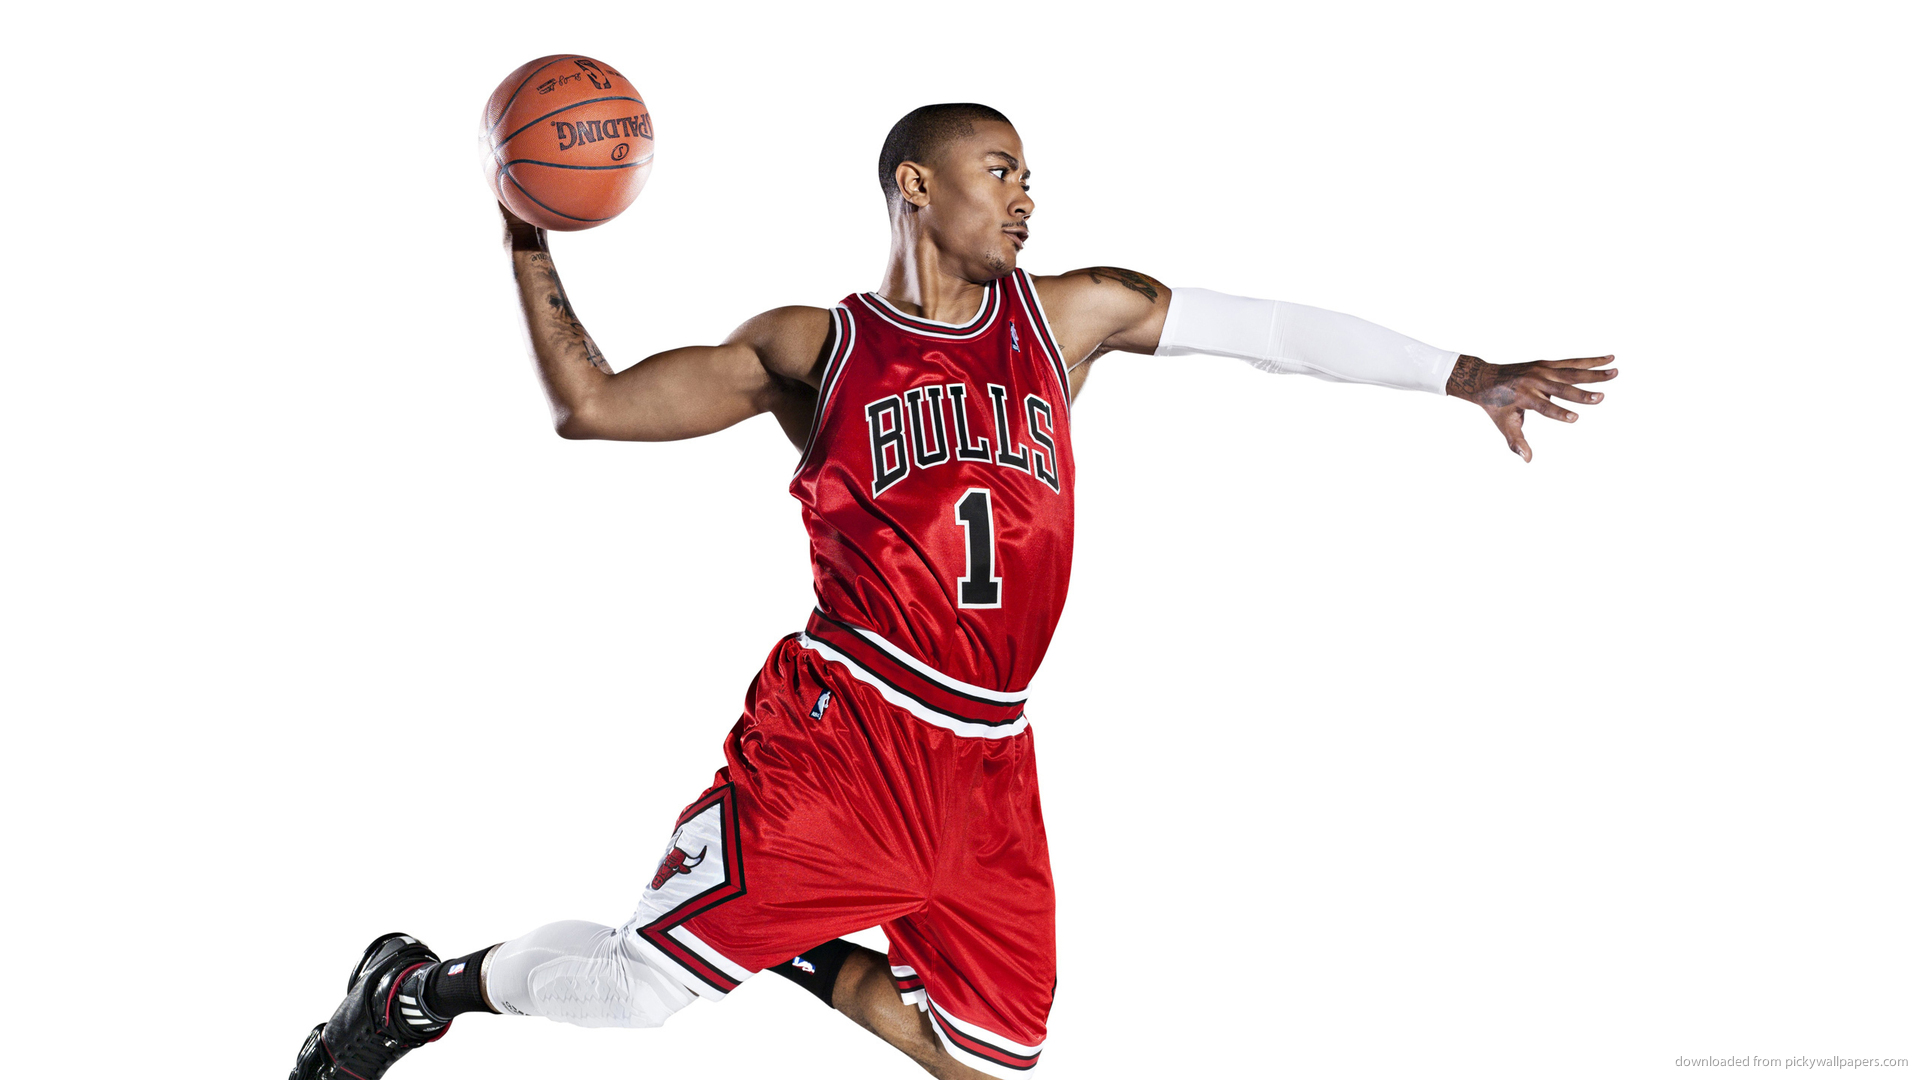 Derrick Rose throwing the ball.